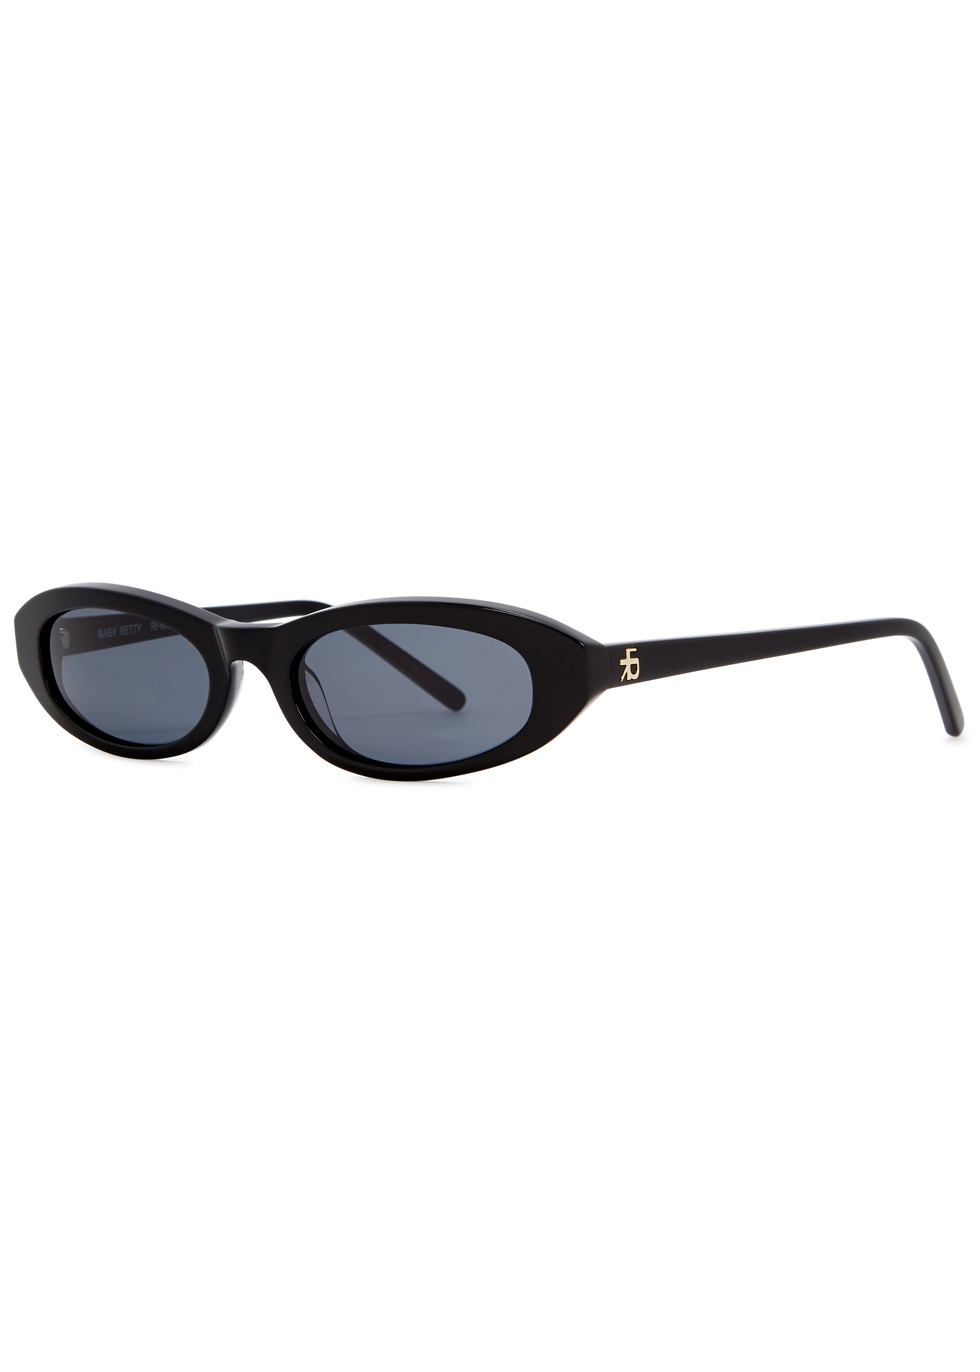 ROBERI AND FRAUD Baby Betty Oval-Frame Sunglasses in Black